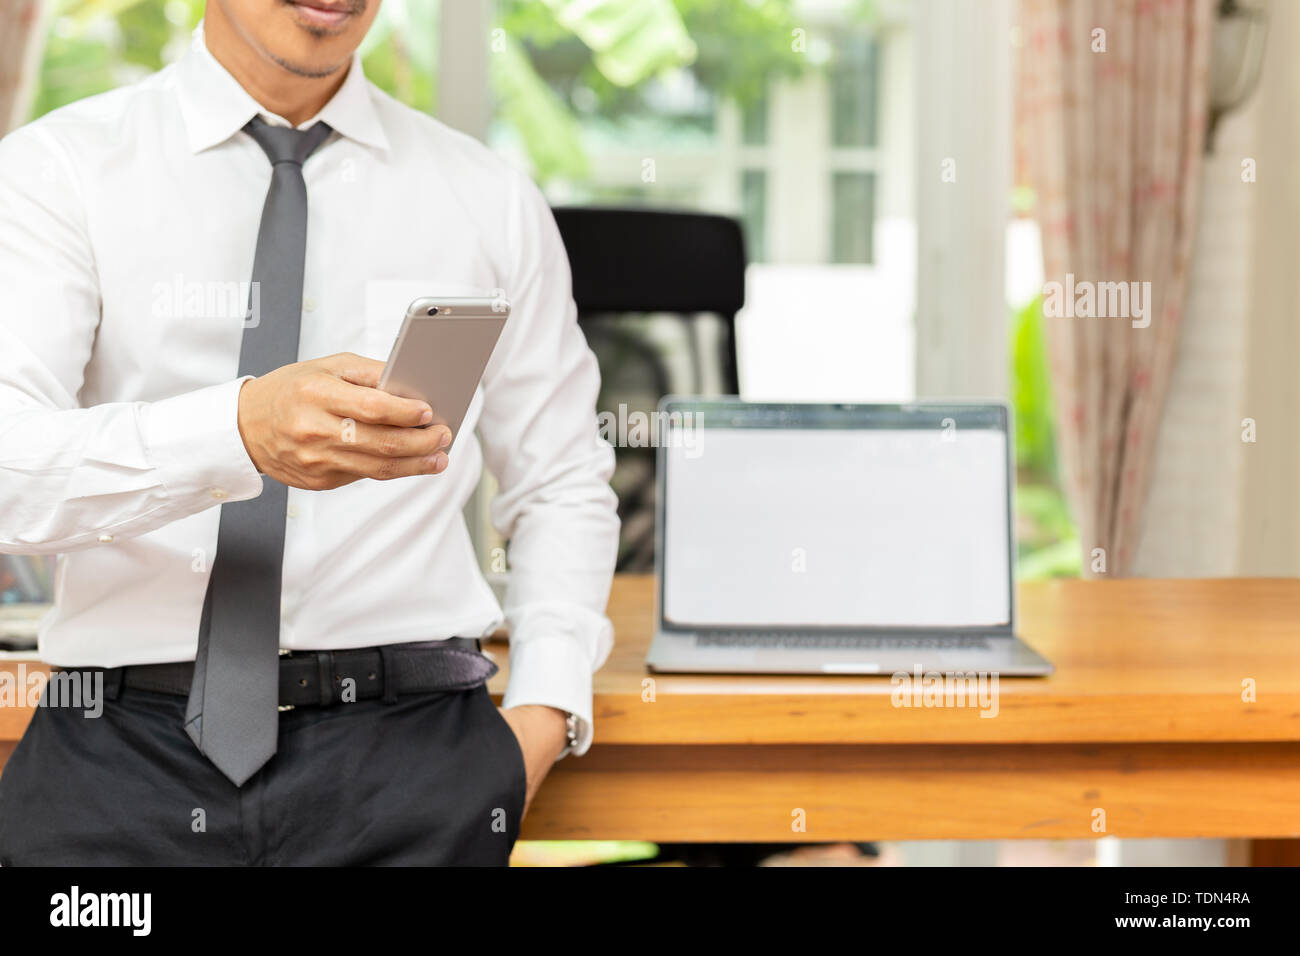 Businessman looking at cell phone with laptop on wooden table at office. Stock Photo